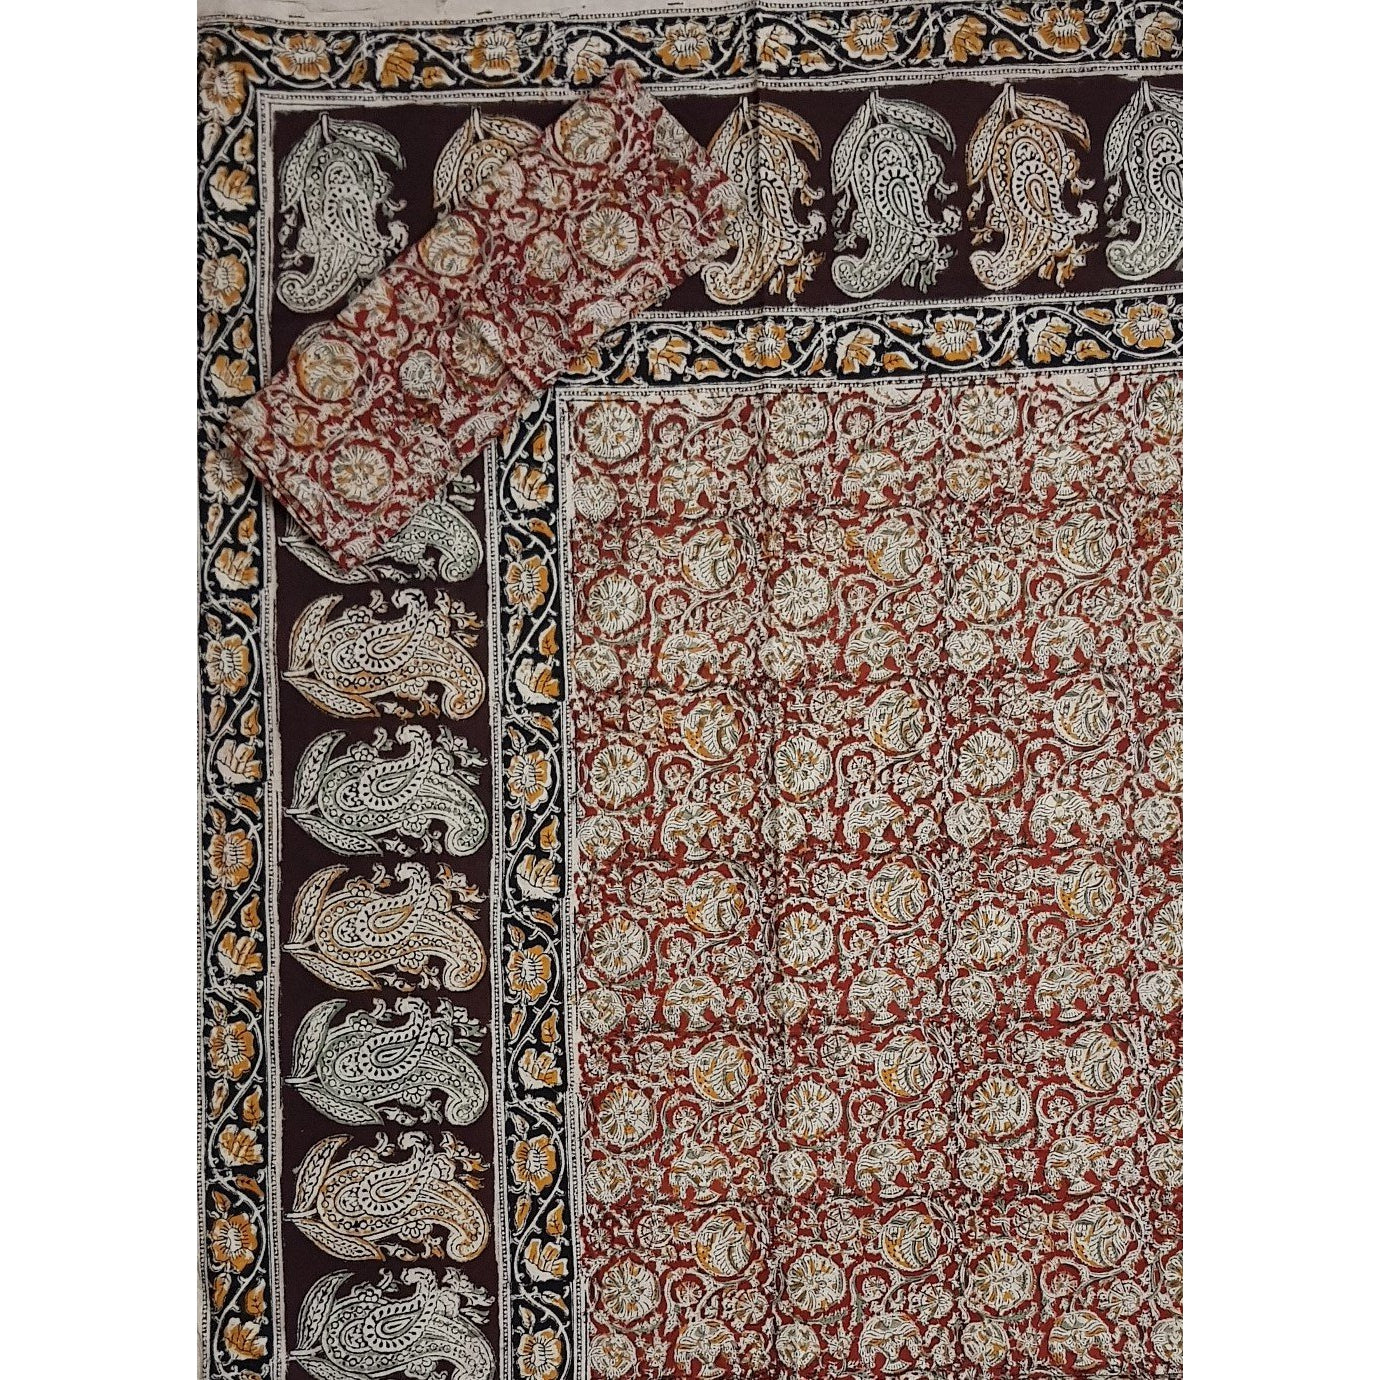 Kalamkari Hand Printed Cotton Double Bed Sheet - Vinshika